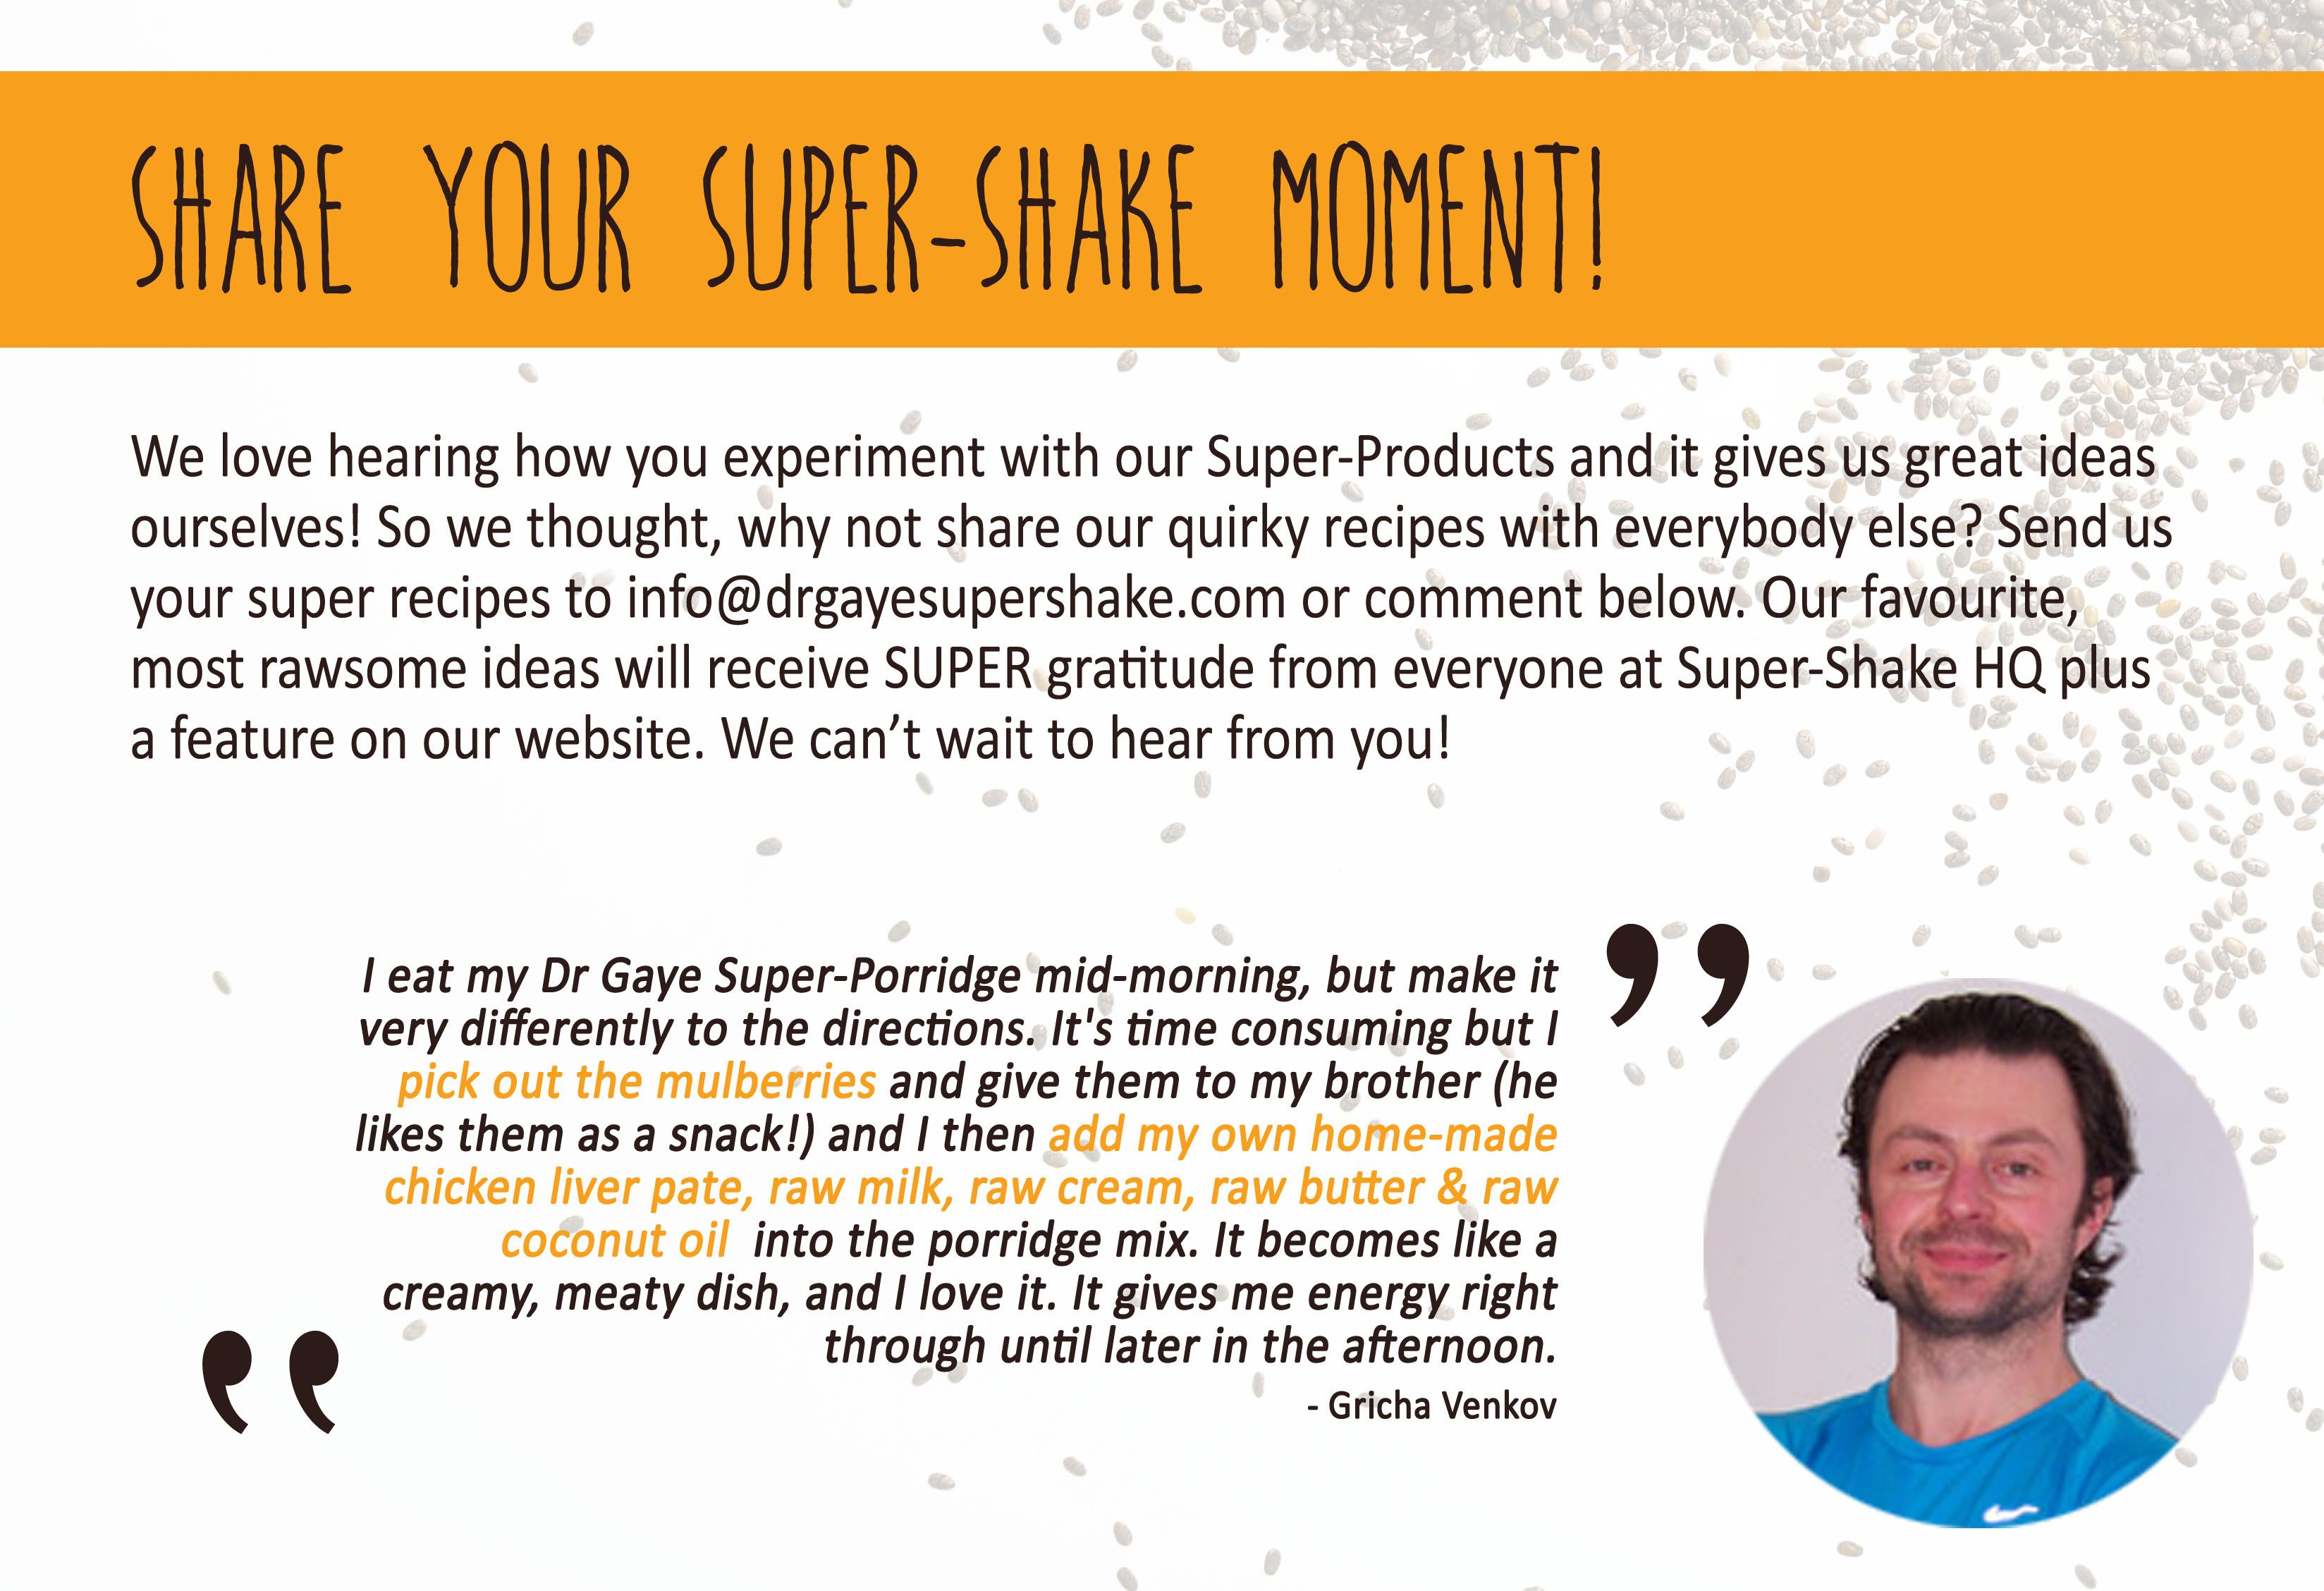 Share with us your SuperShake moment! (With images